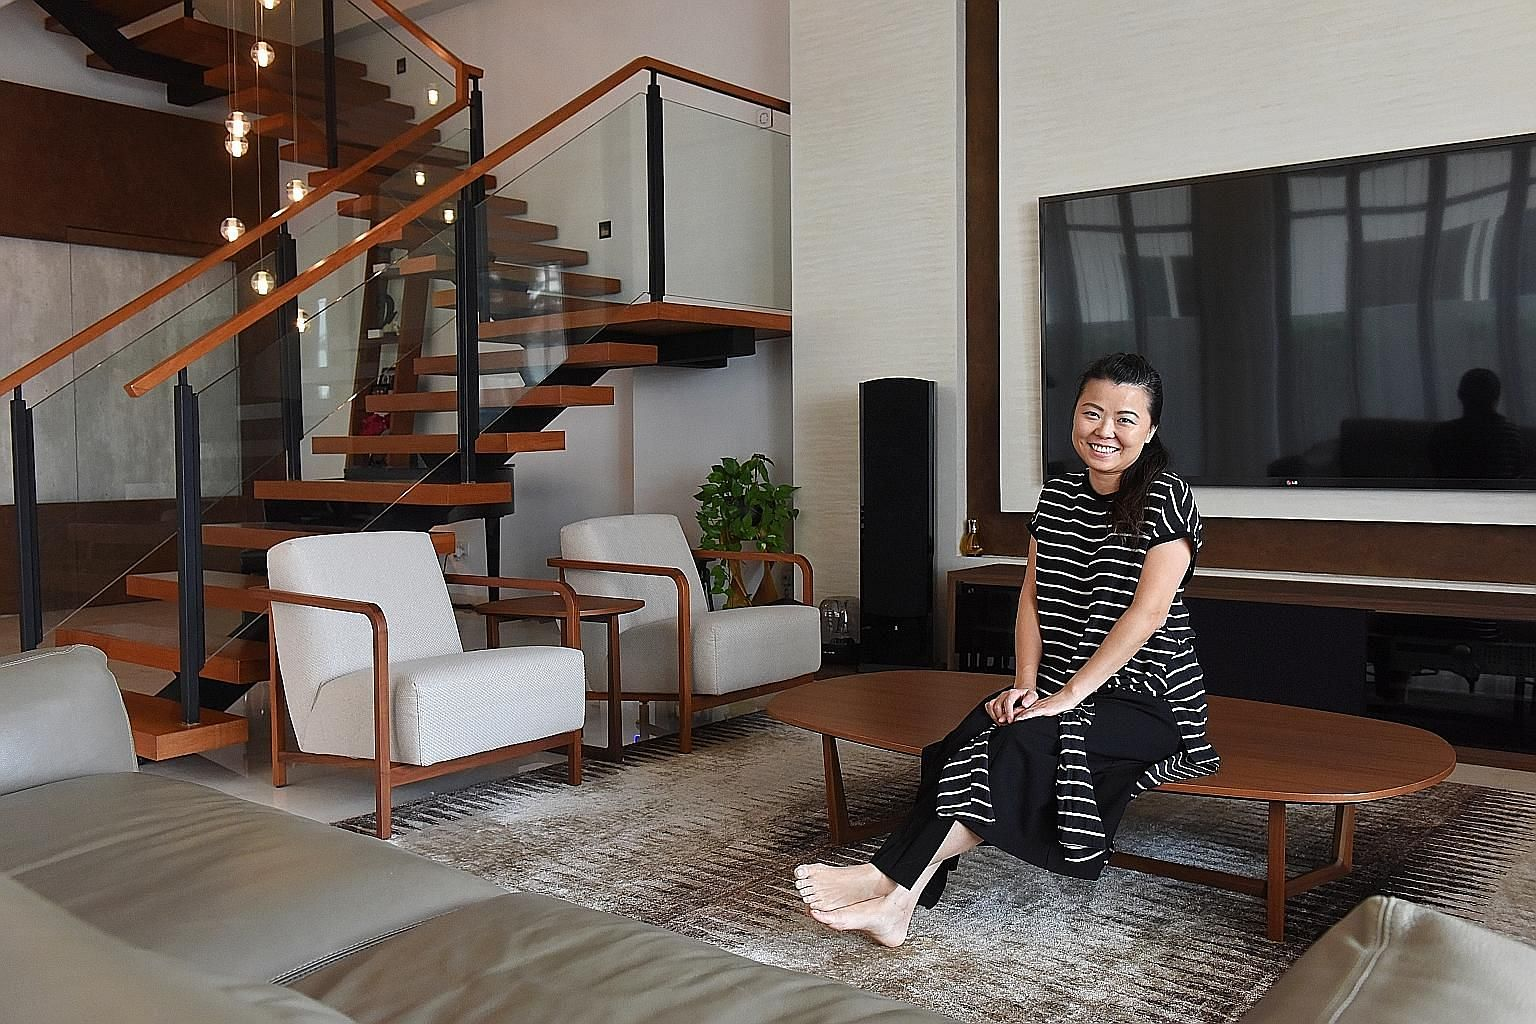 Ms Olive Tai and her husband bought a five-storey cluster house for $1.3 million in 2008, and sold it for $2.3 million in 2011. Ms Olive Tai at her home in Serangoon Gardens. She co-founded Beautiful.me, an online shopping platform for beauty, body c